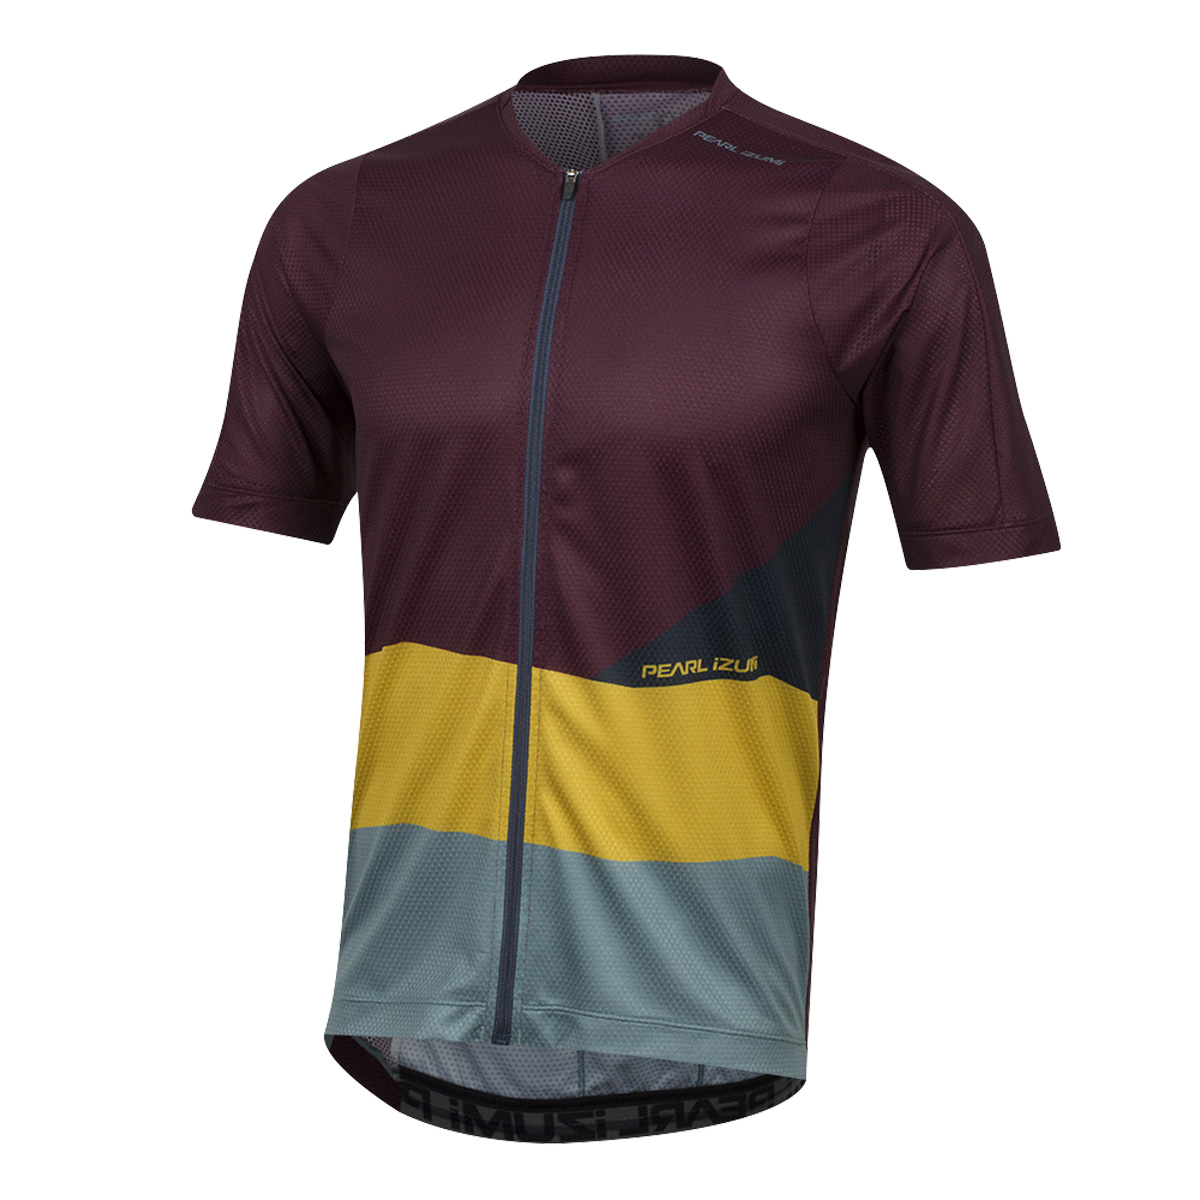 786da7ac3 Pearl Izumi 2018 Men s MTB Ltd Short Sleeve Cycling Jersey - 19121702 XXL  Port arctic Wave. About this product. Picture 1 of 3  Picture 2 of 3   Picture 3 of ...